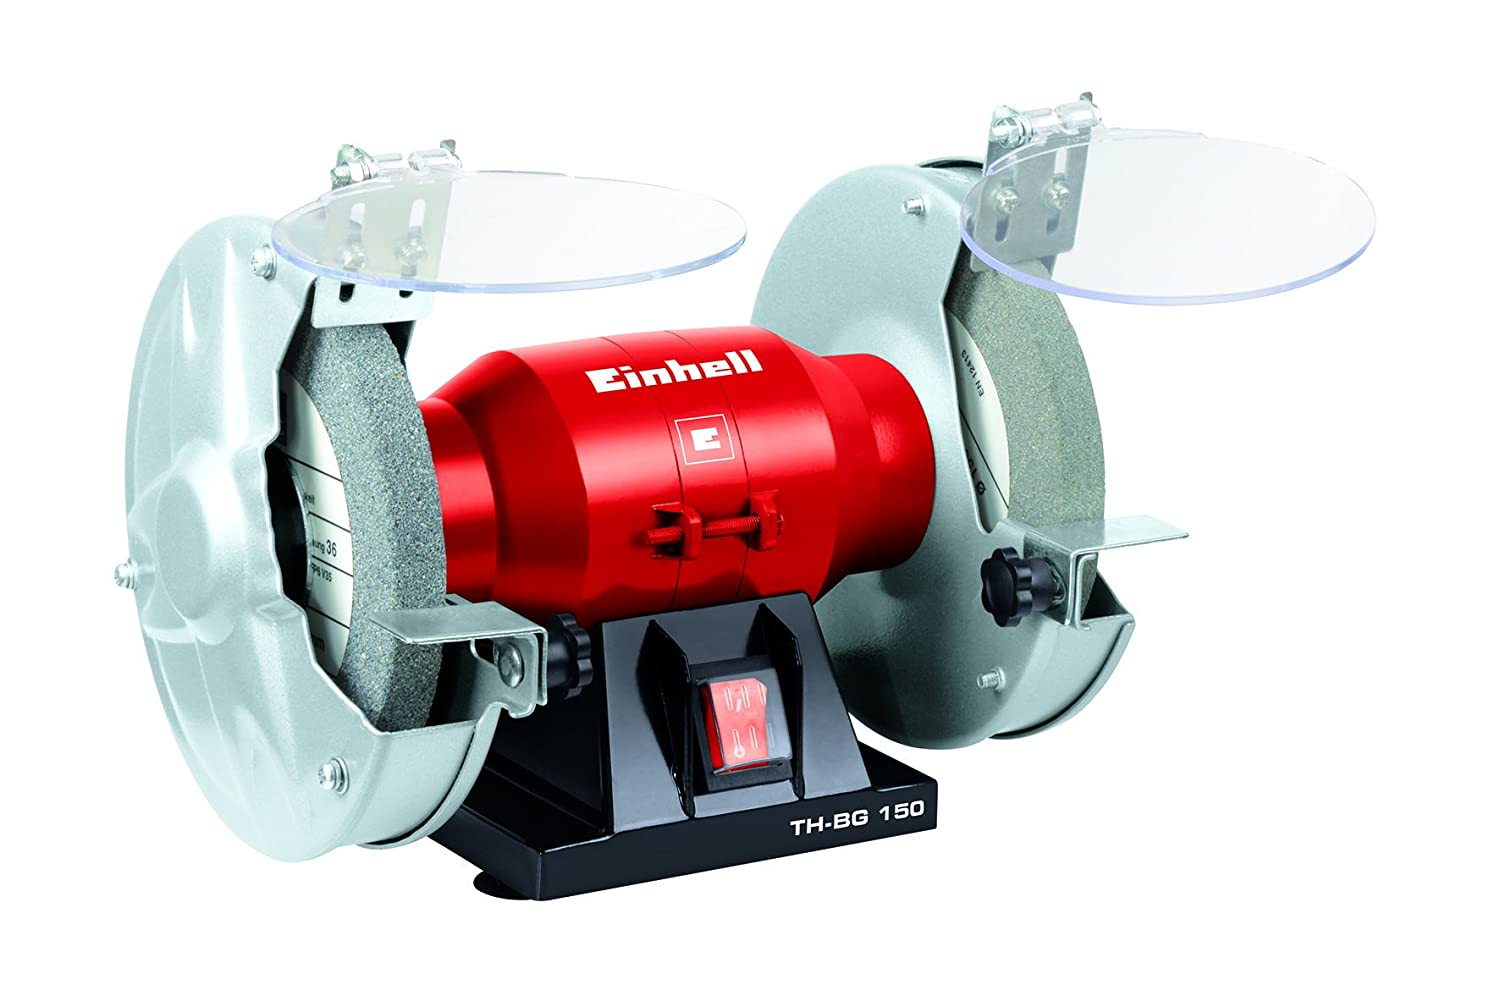 Einhell - TH-BG 150 - Esmeriiladora disco 150 mm 4412570 Esmeril